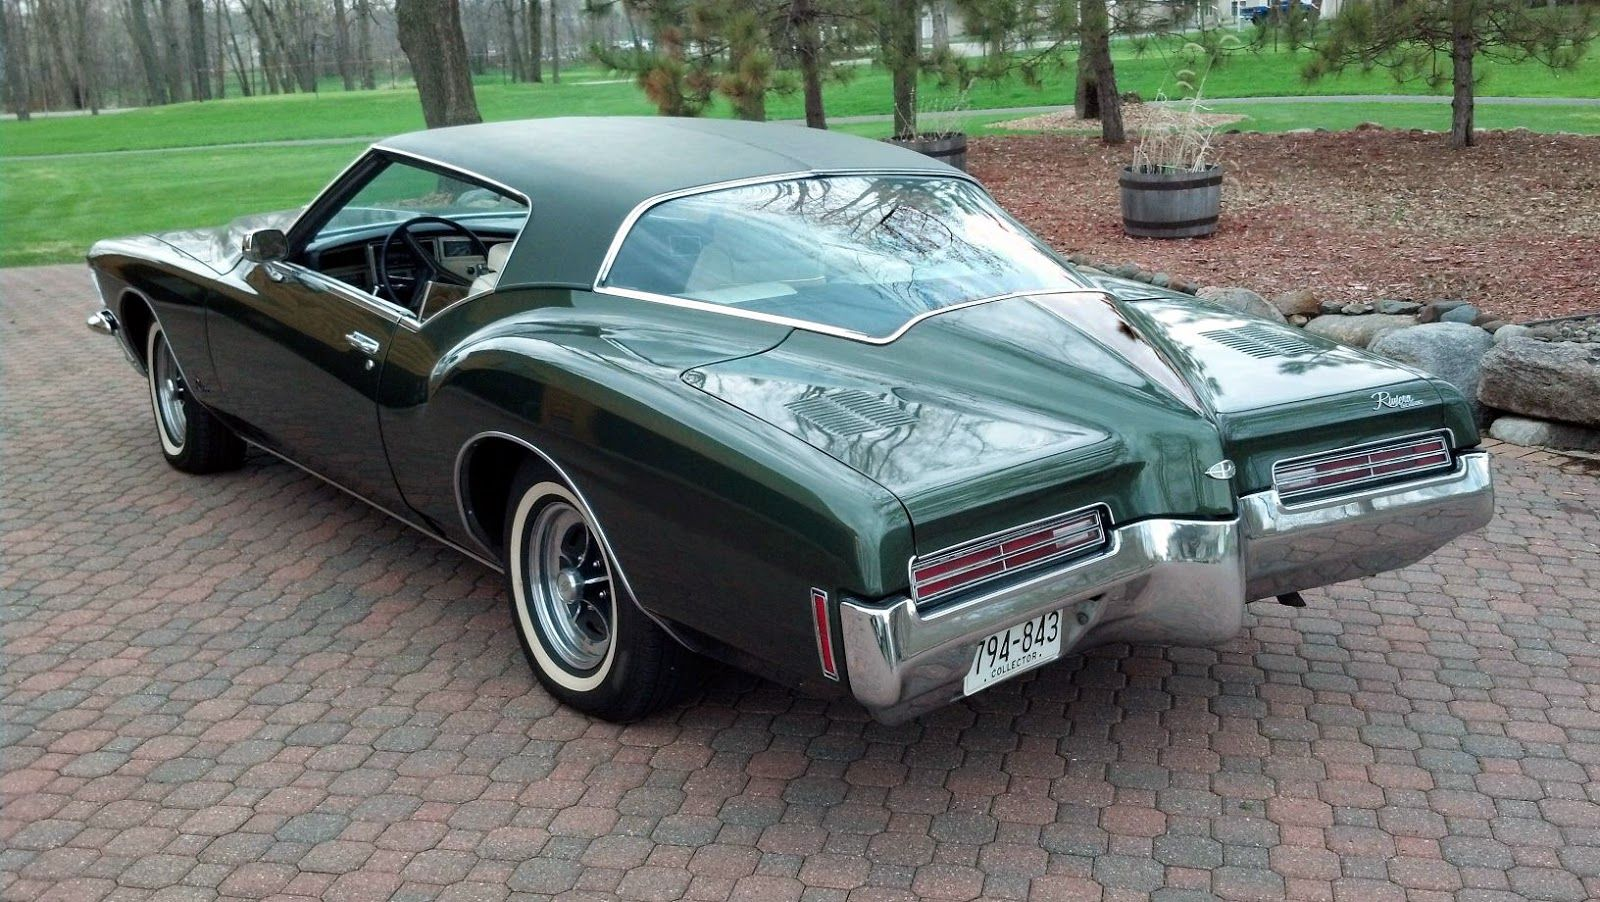 1971 buick riviera features amazing and unusual design especially the rear end fastly gained a. Black Bedroom Furniture Sets. Home Design Ideas